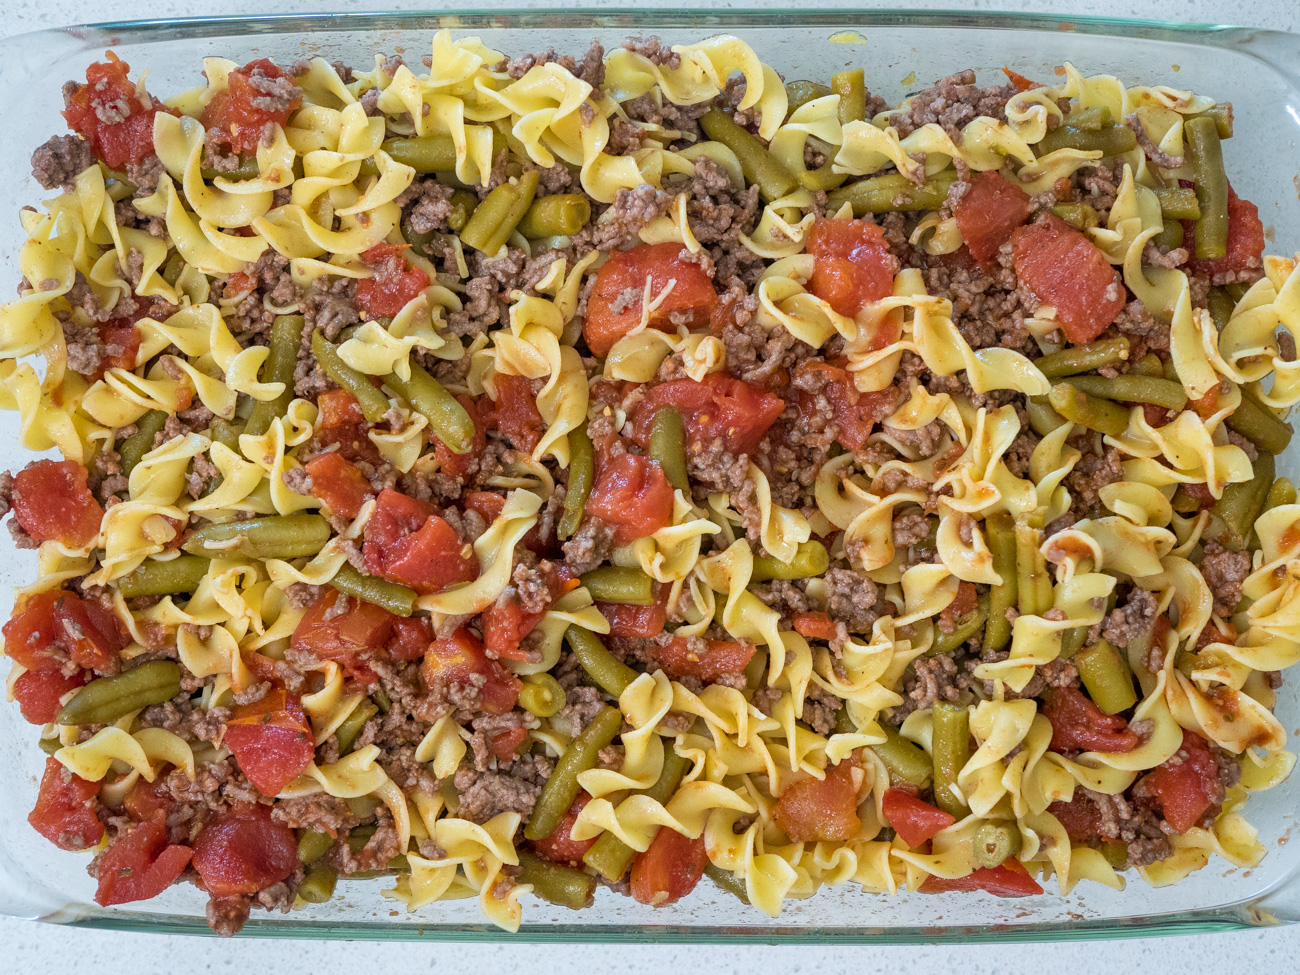 Preheat oven to 350˚. Add tomatoes and drained green beans to beef and stir. In a 9x13 casserole dish combine beef mixture with the egg noodles.